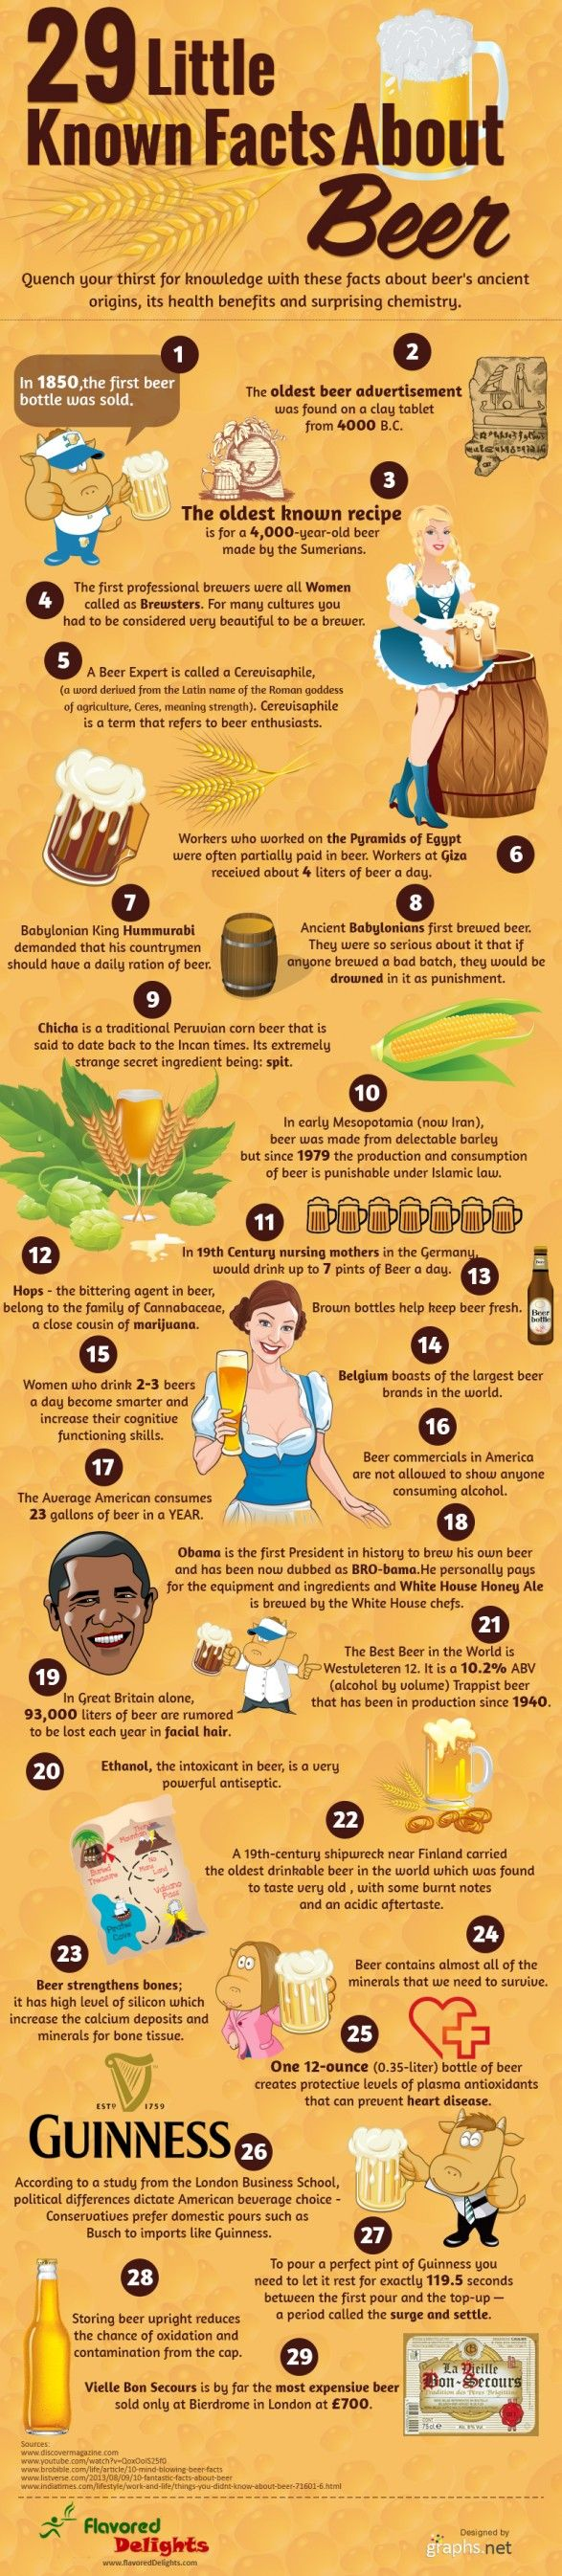 29 interesting facts of beer